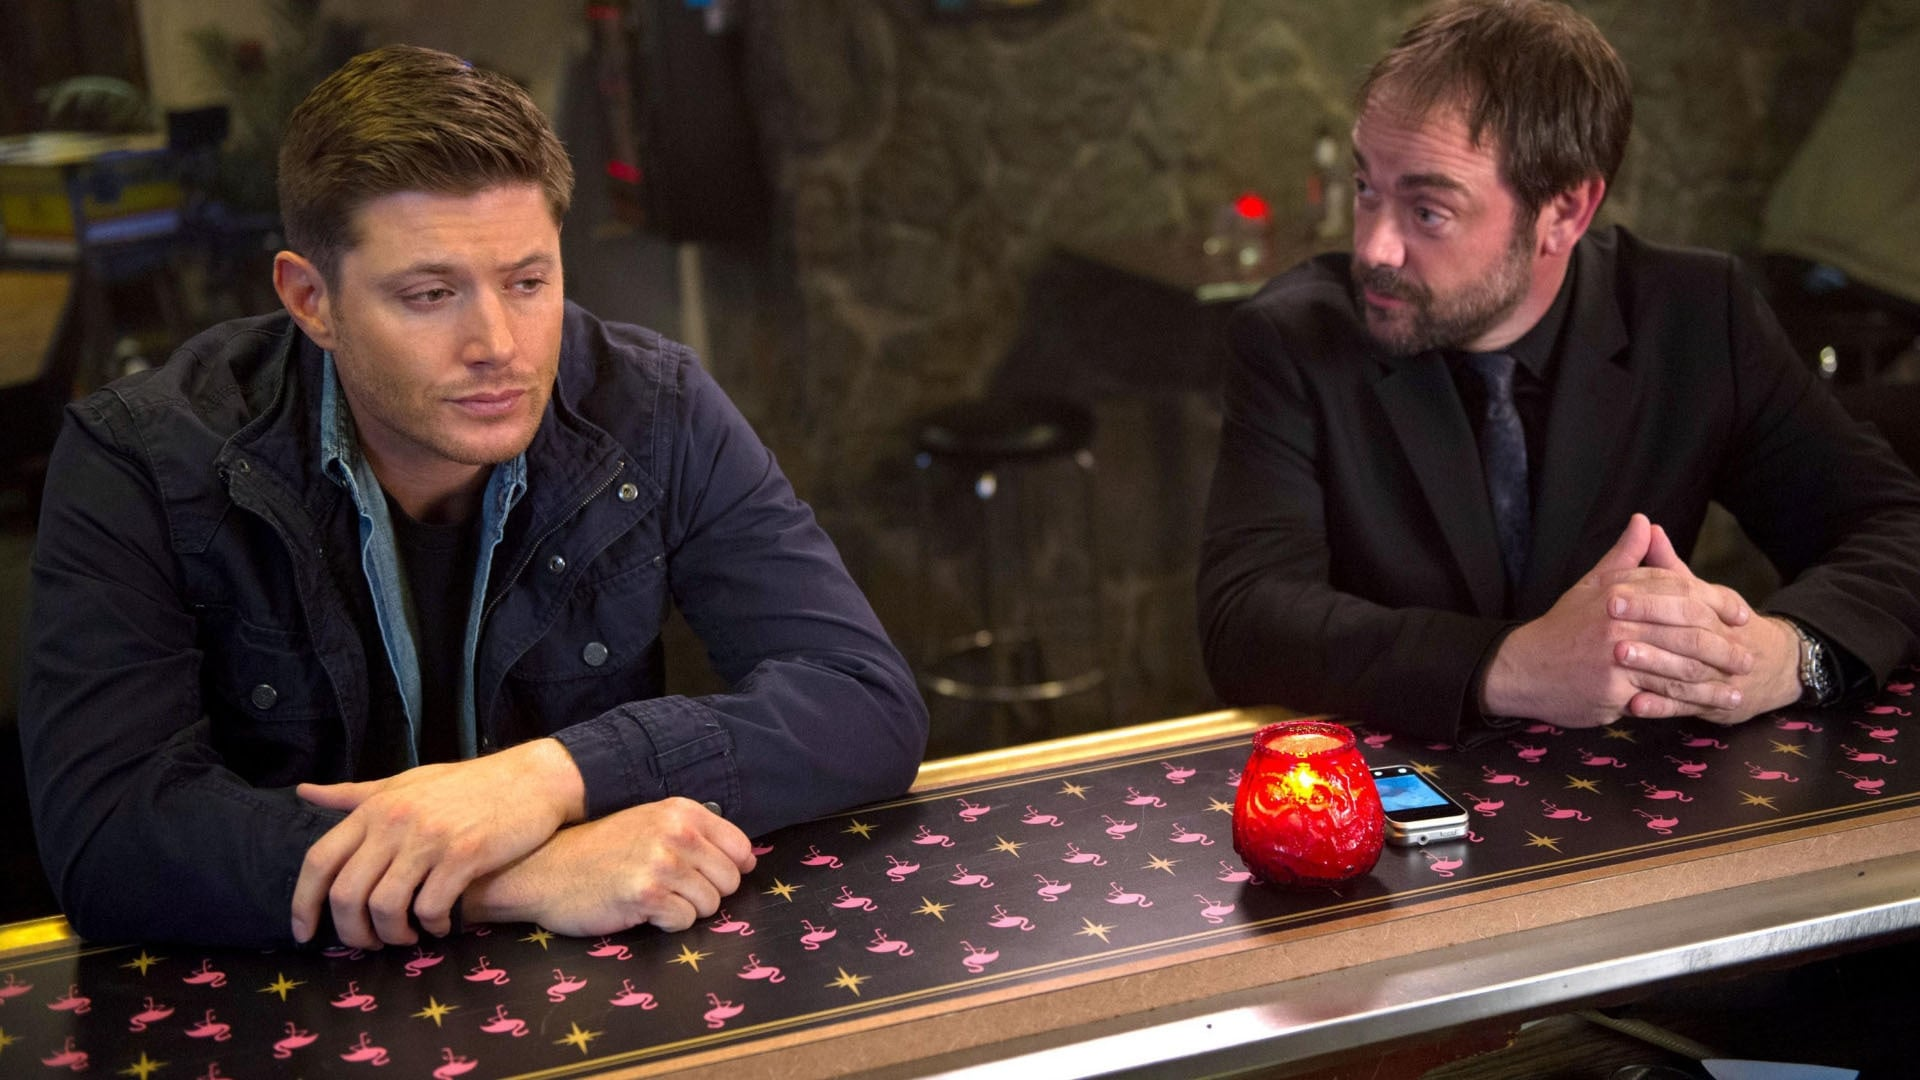 Supernatural - Season 10 Episode 2 : Reichenbach